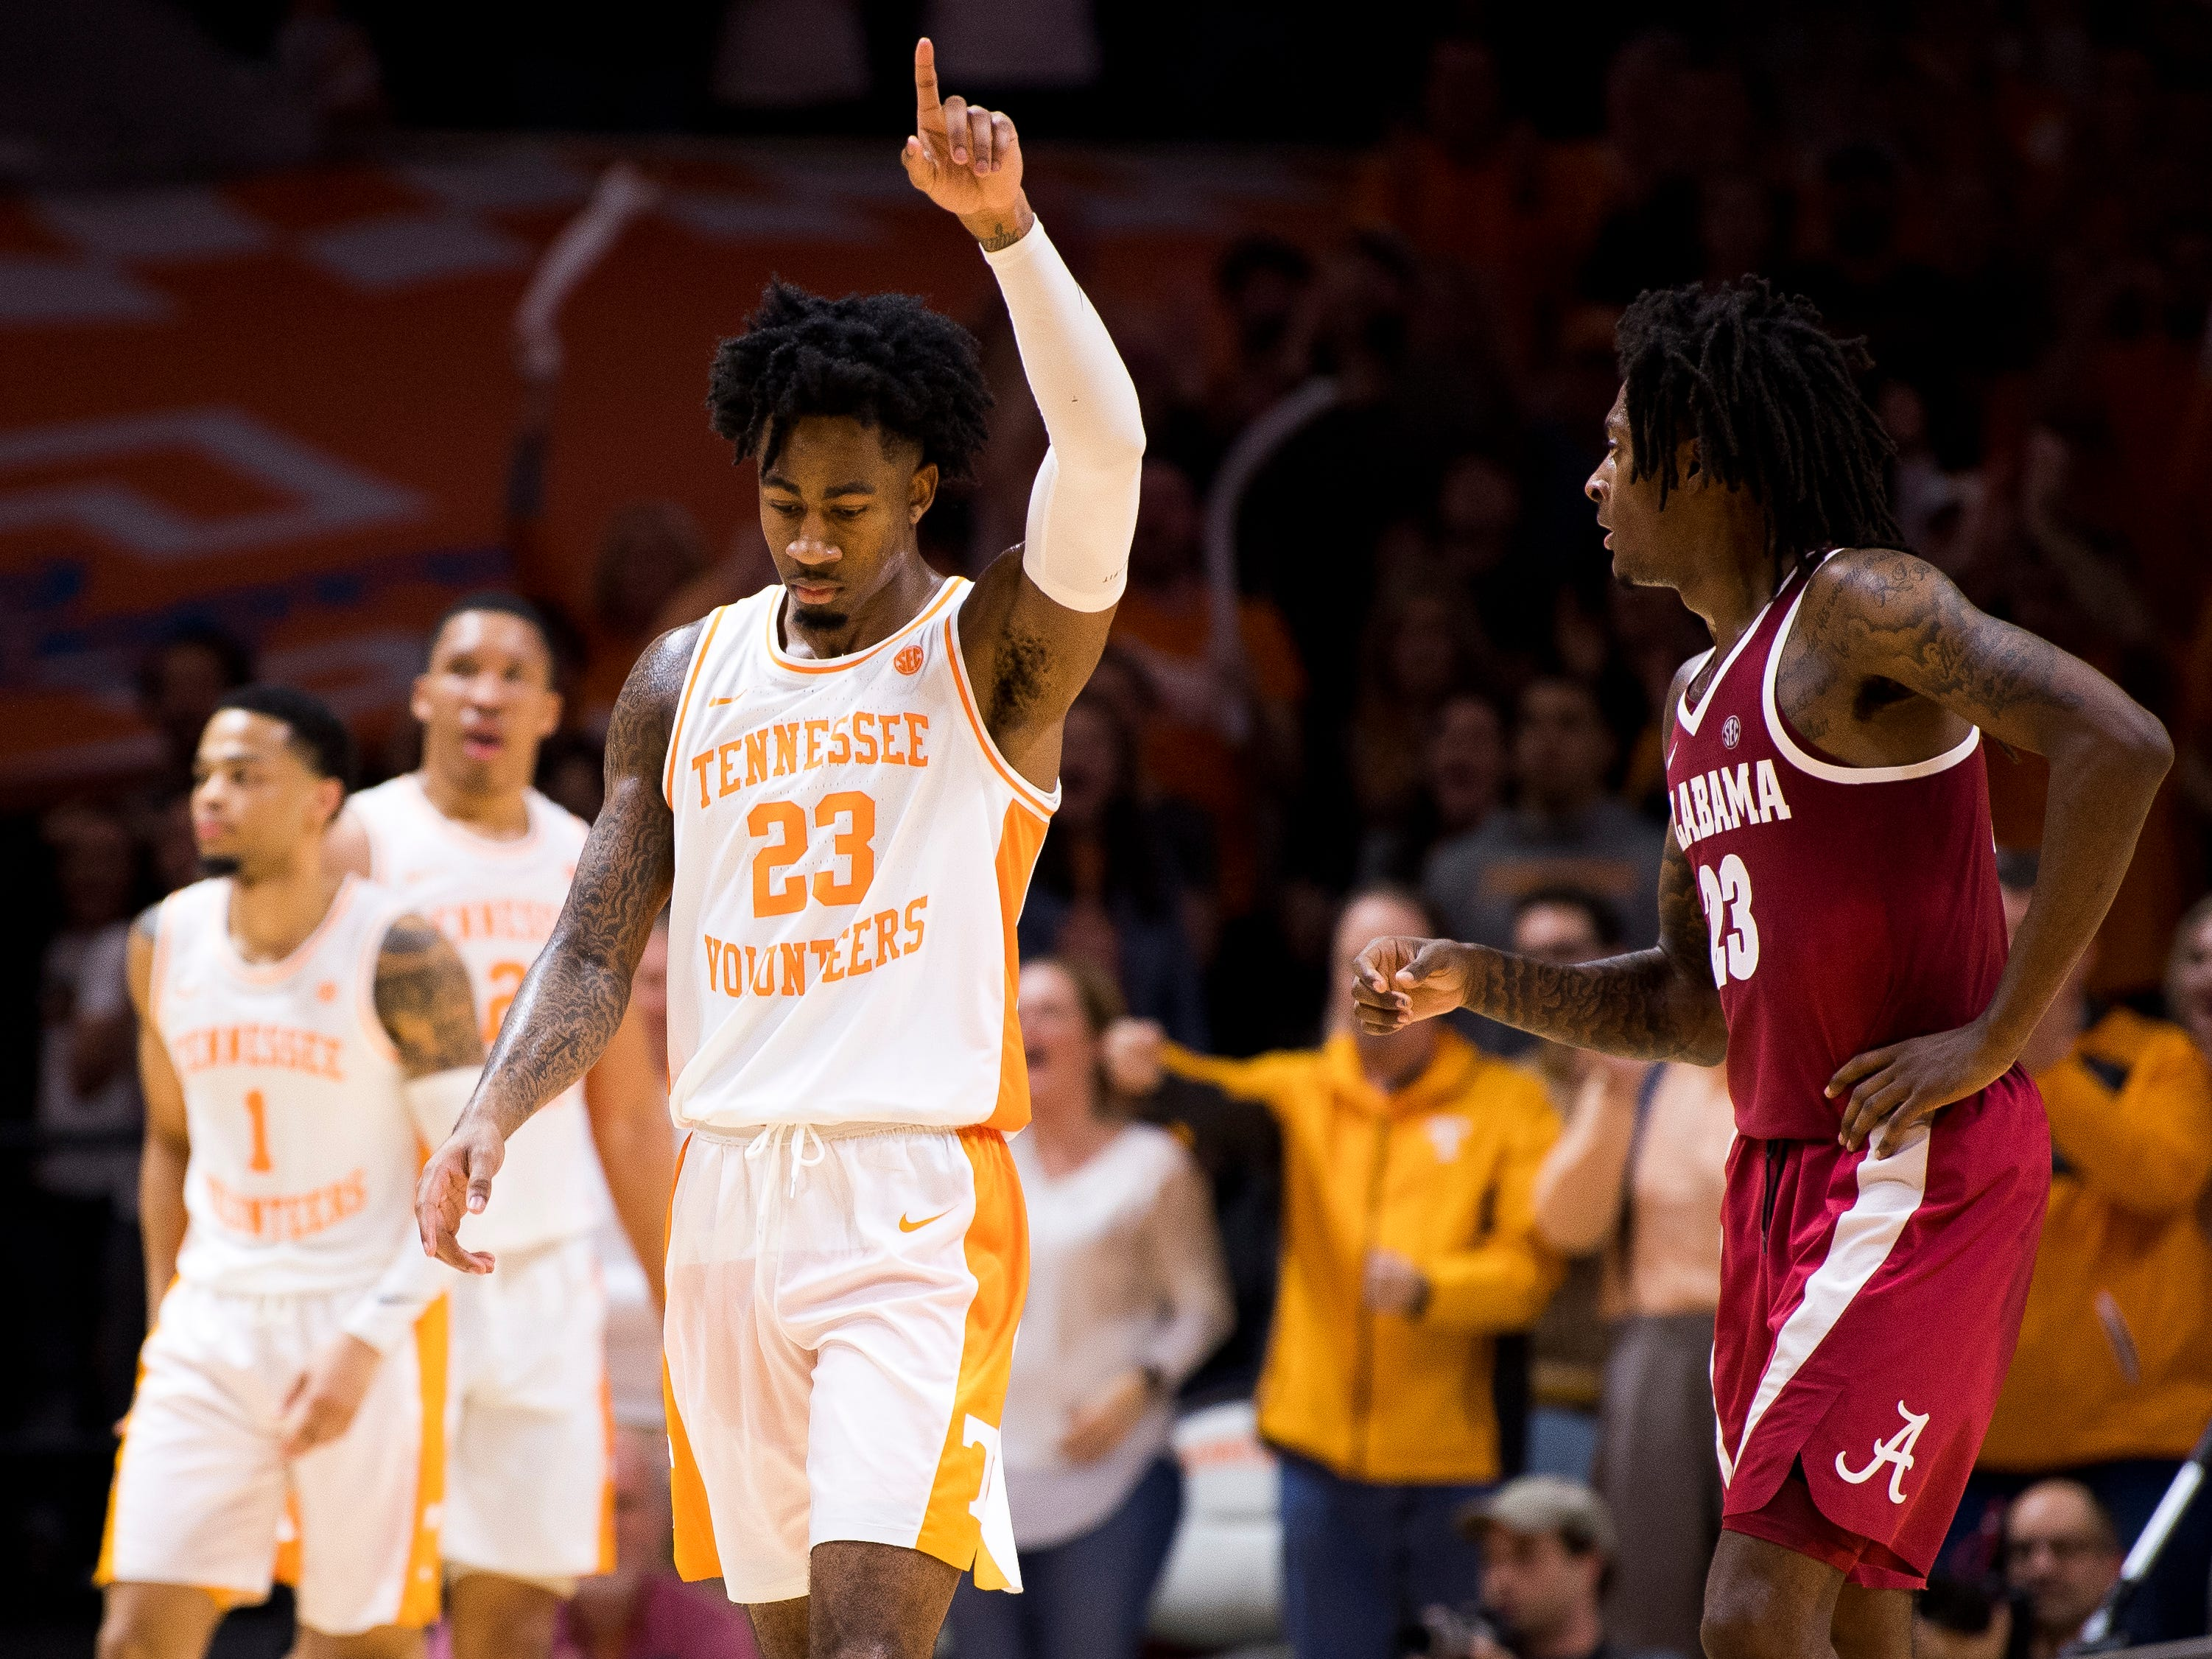 Tennessee guard Jordan Bowden (23) celebrates a call during the second half of Tennessee's home SEC conference game against Alabama at Thompson-Boling Arena in Knoxville on Saturday, January 19, 2019.